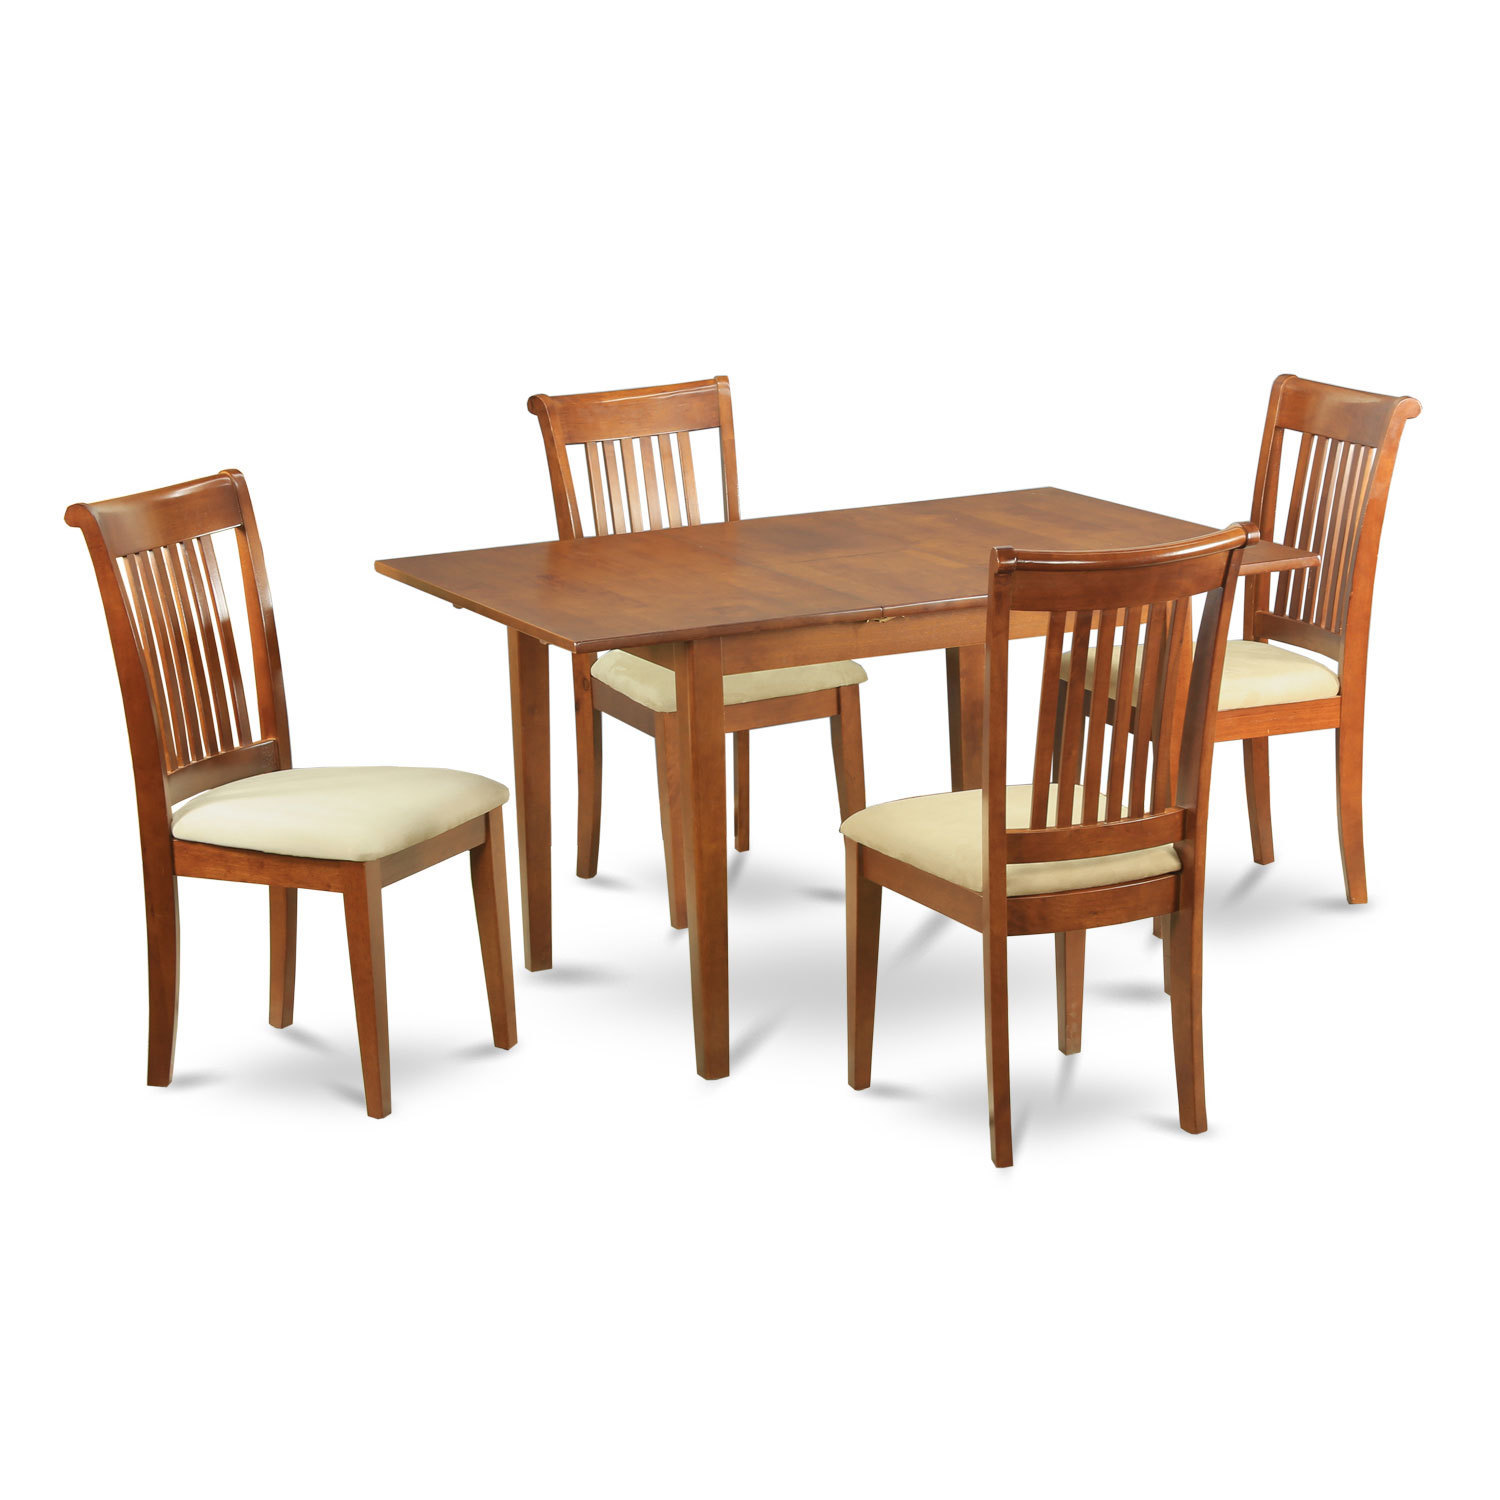 Small dinette set design homesfeed for Square dinette sets